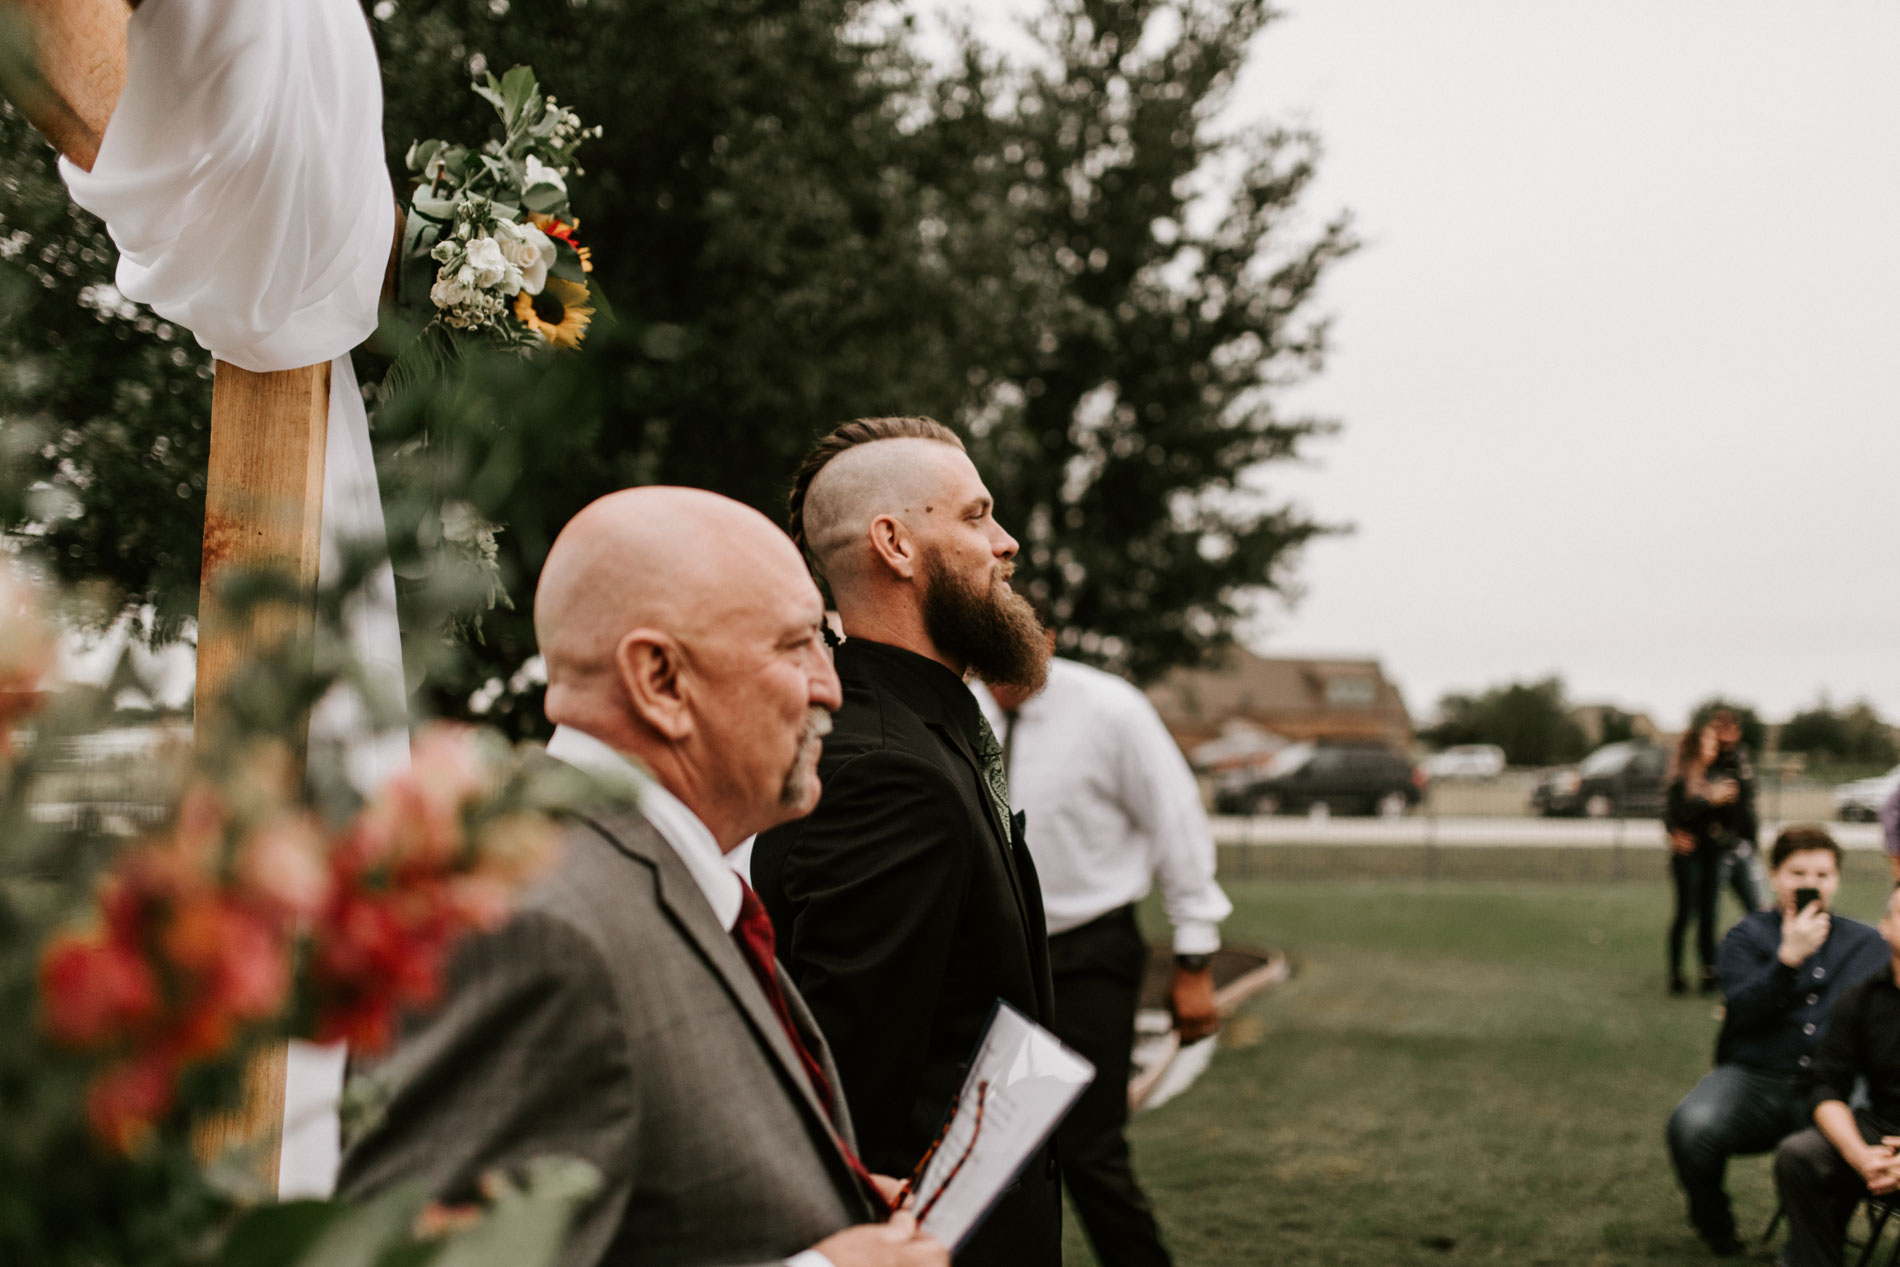 groom waiting for bride to walk down the aisle